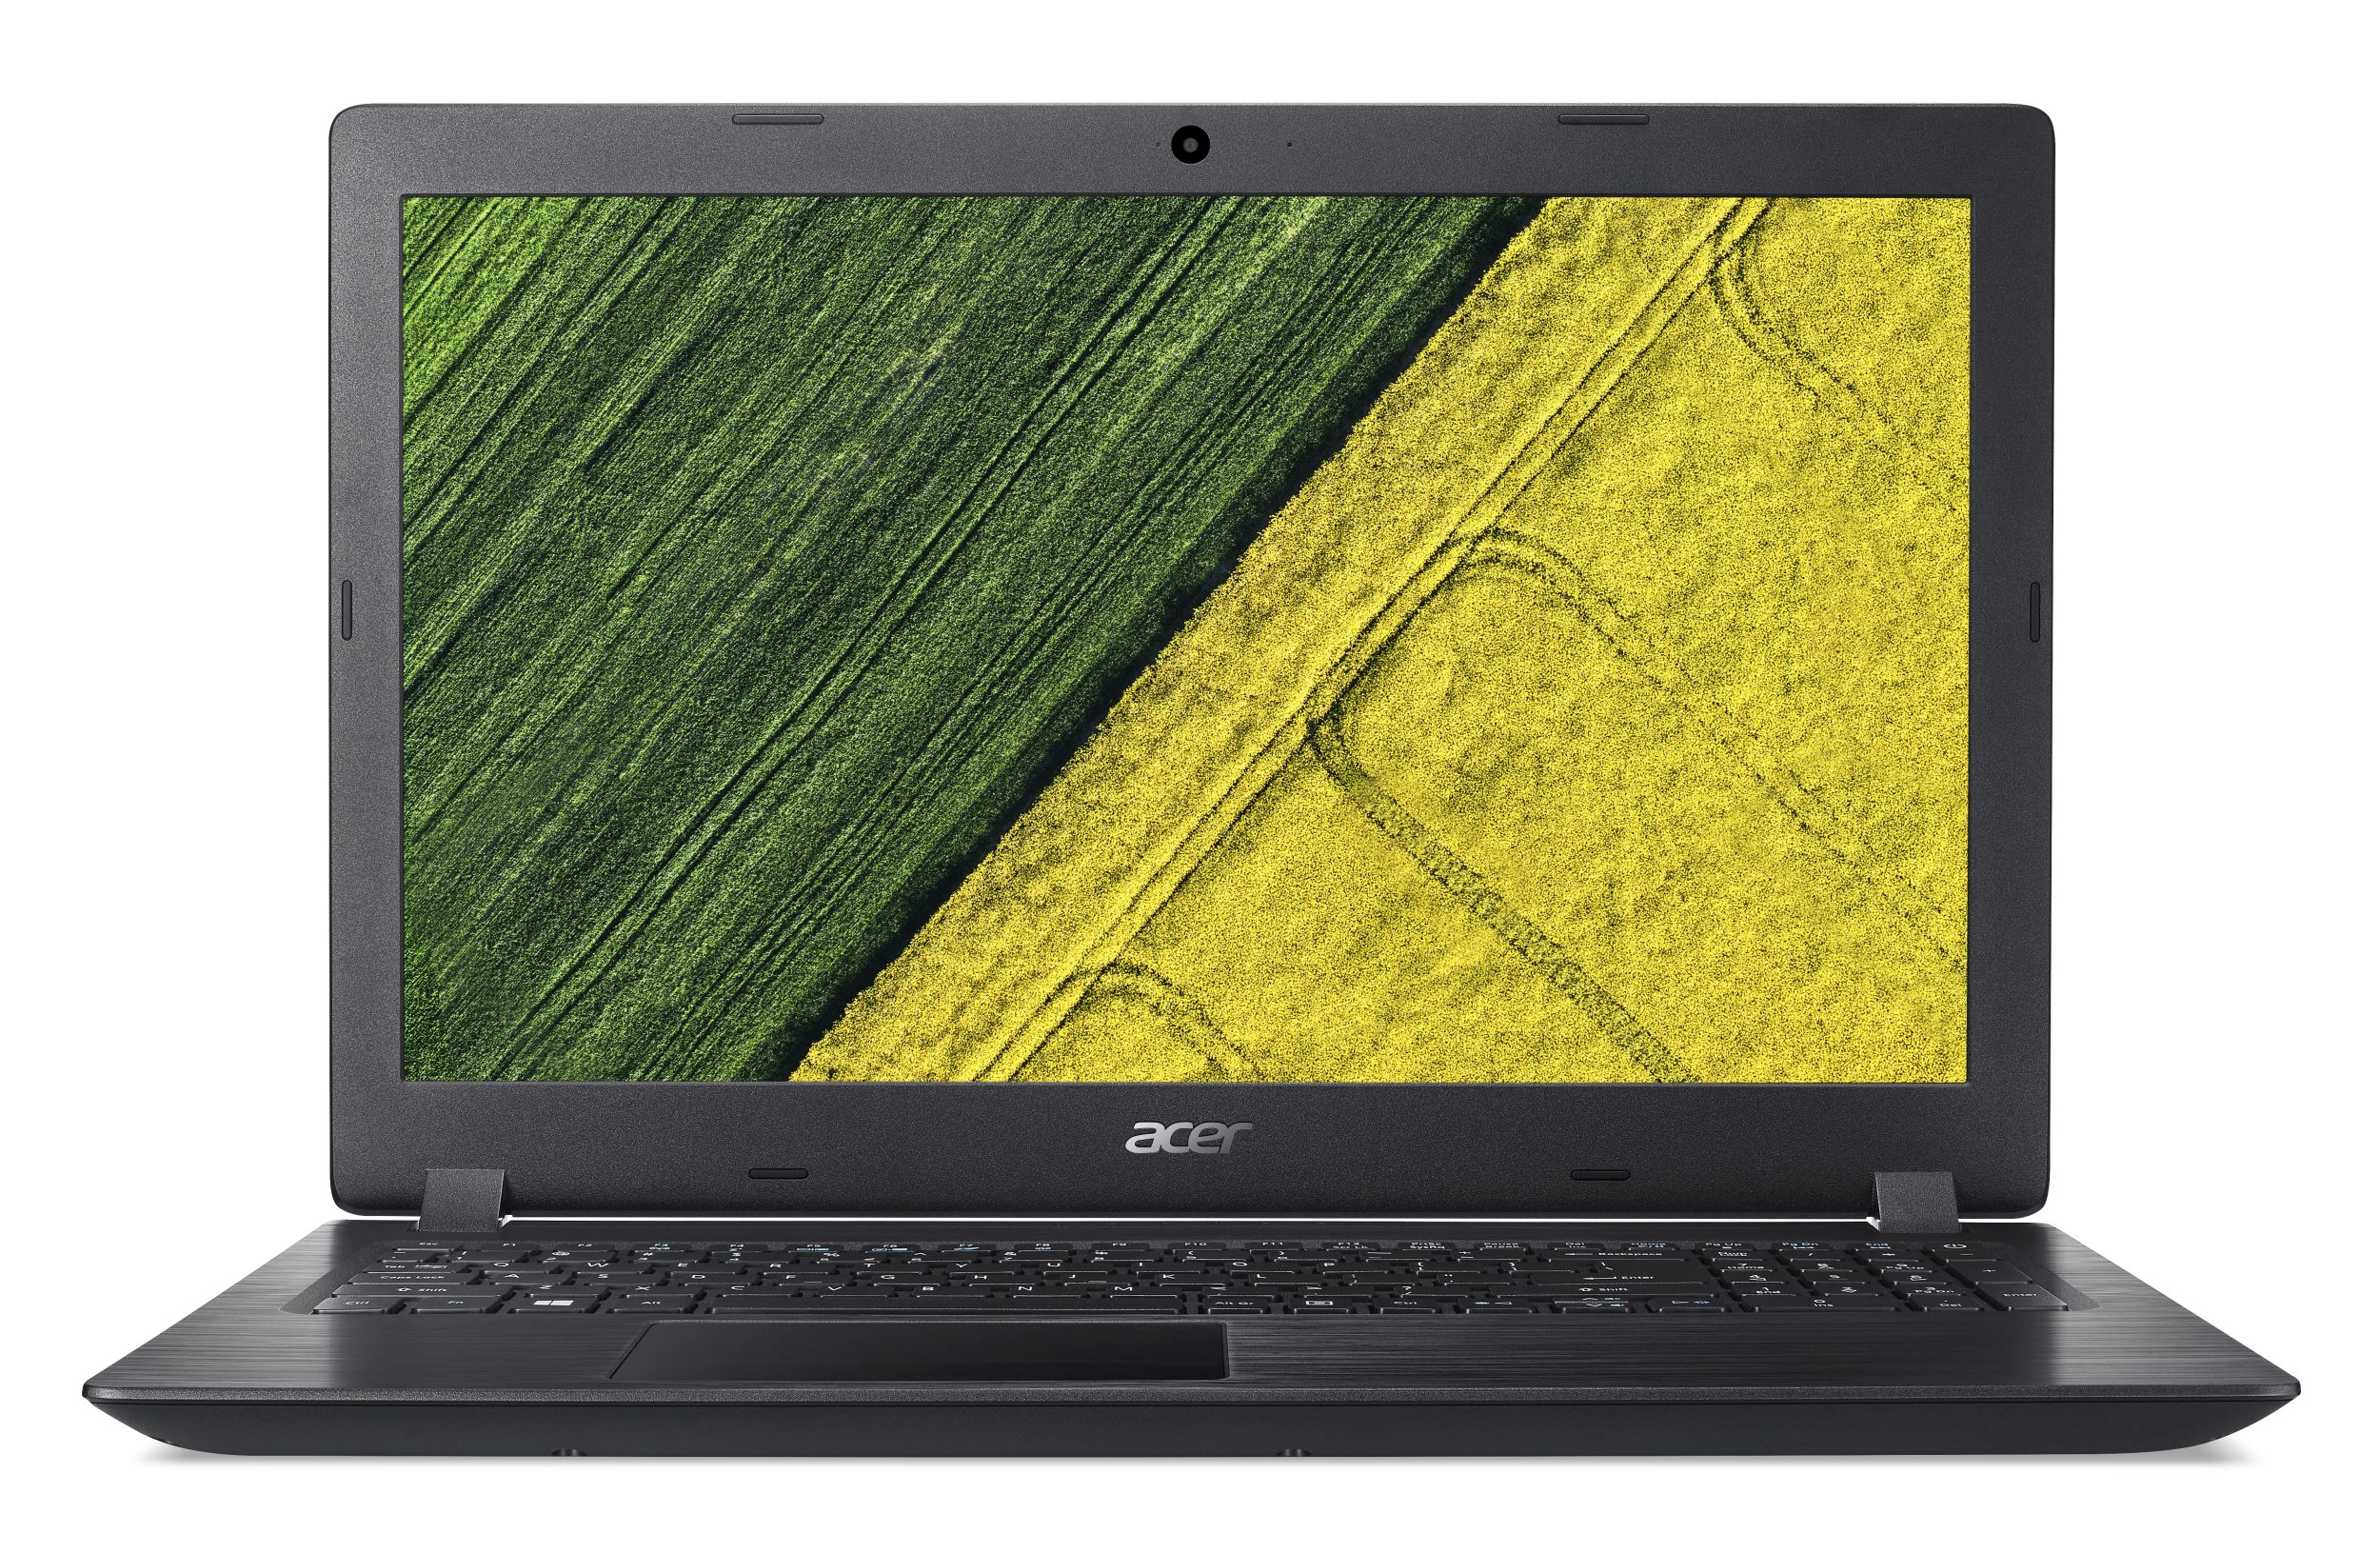 "Acer Aspire 3 (A315-21-991J) AMD A9-9420/4GB+N/256GB SSD M.2+N/HD Graphics/15.6"" FHD LED matný/BT/W10 Home/Black"